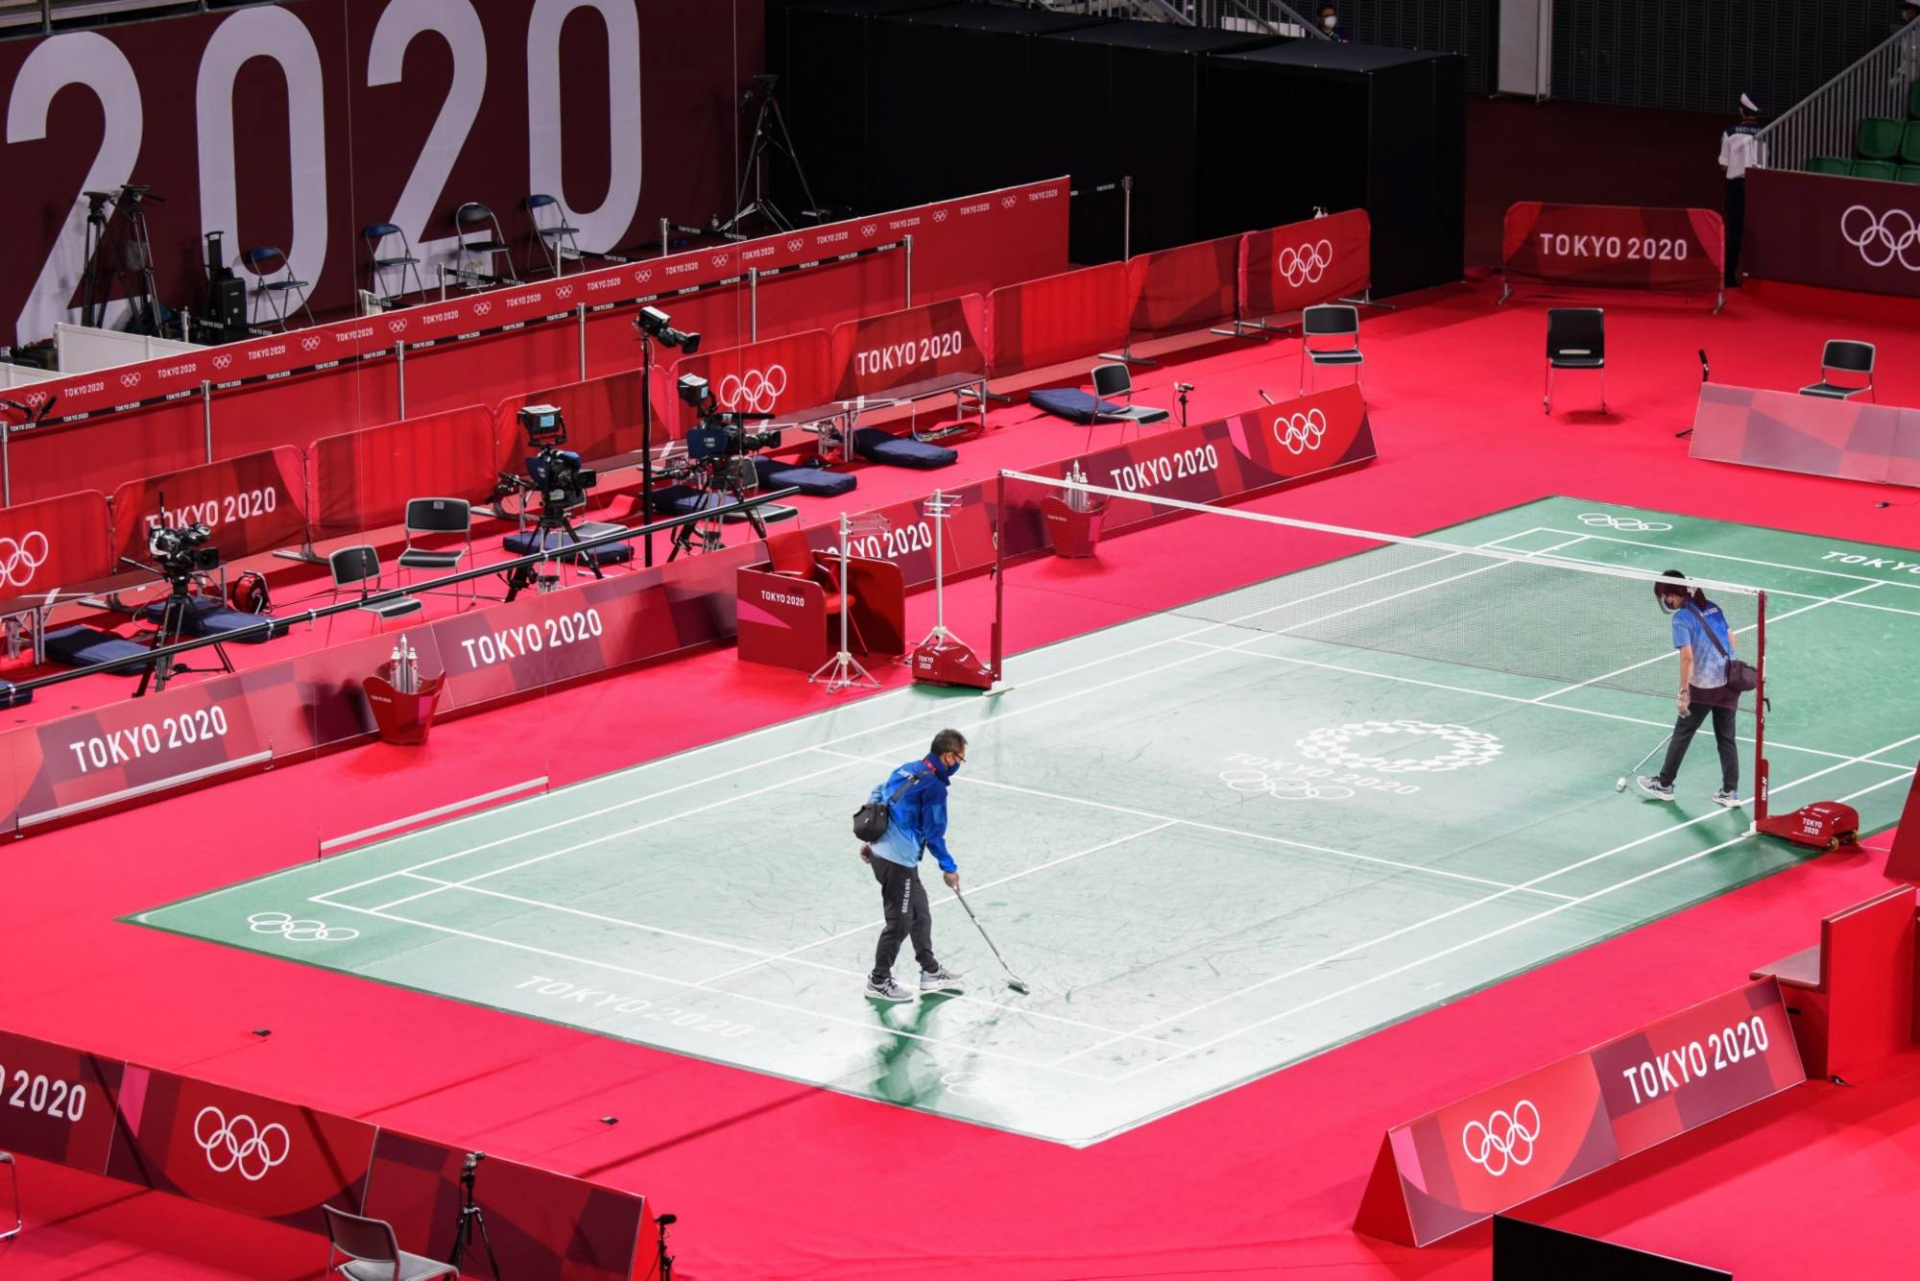 Volunteers clean up a court before badminton matches at the Musashino Forest Sport Plaza in Chofu, Tokyo.   BLOOMBERG